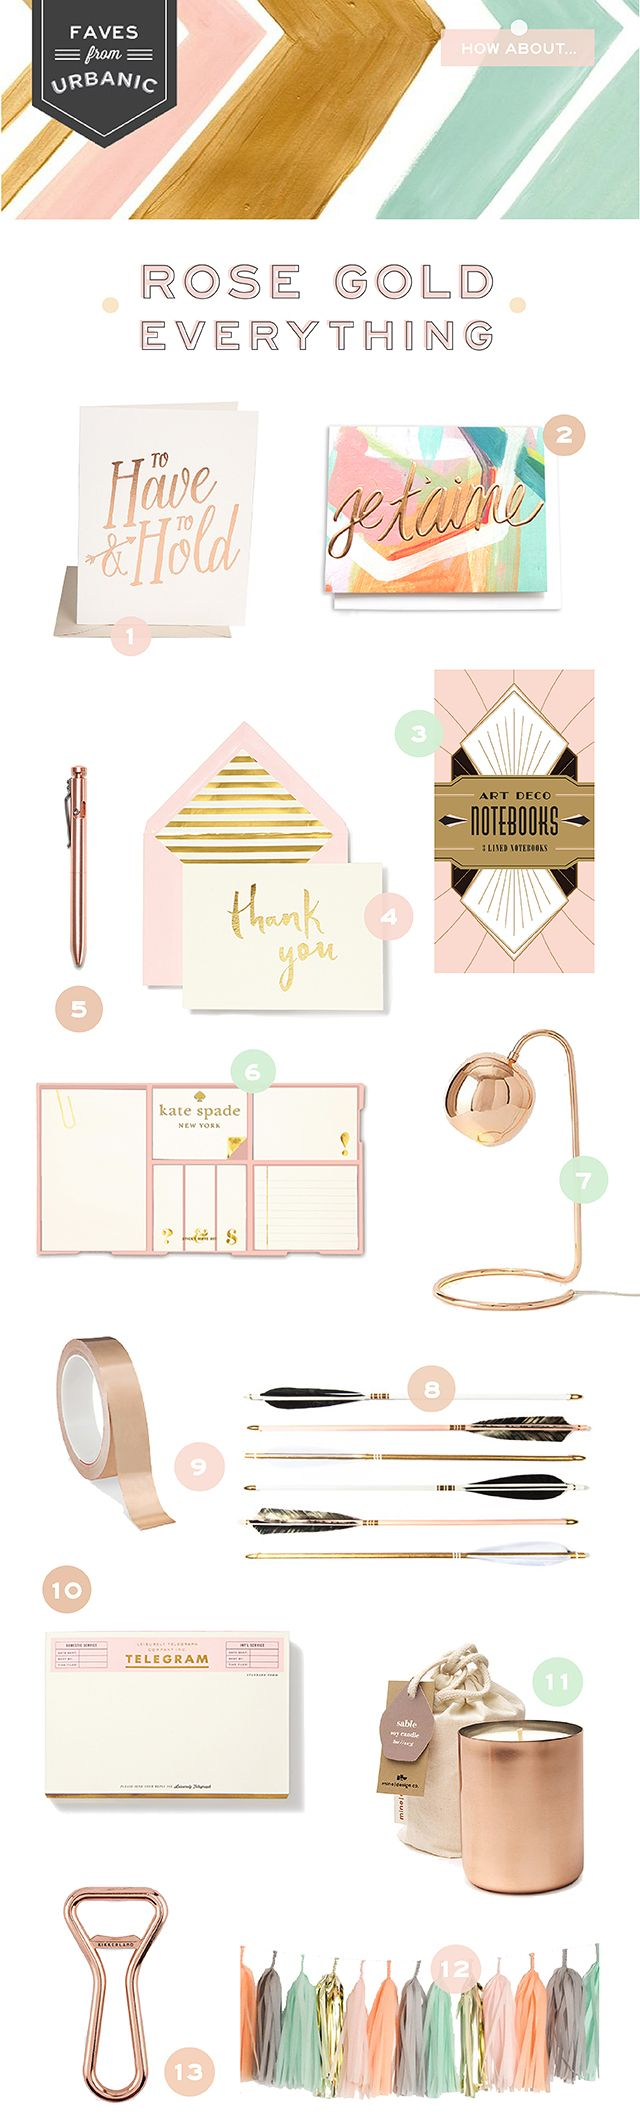 Love seeing our je'taime card included on the urbanic faves | rose gold everything for OSBP. Shop it here: http://www.thimblepress.com/product/je-taime-card/